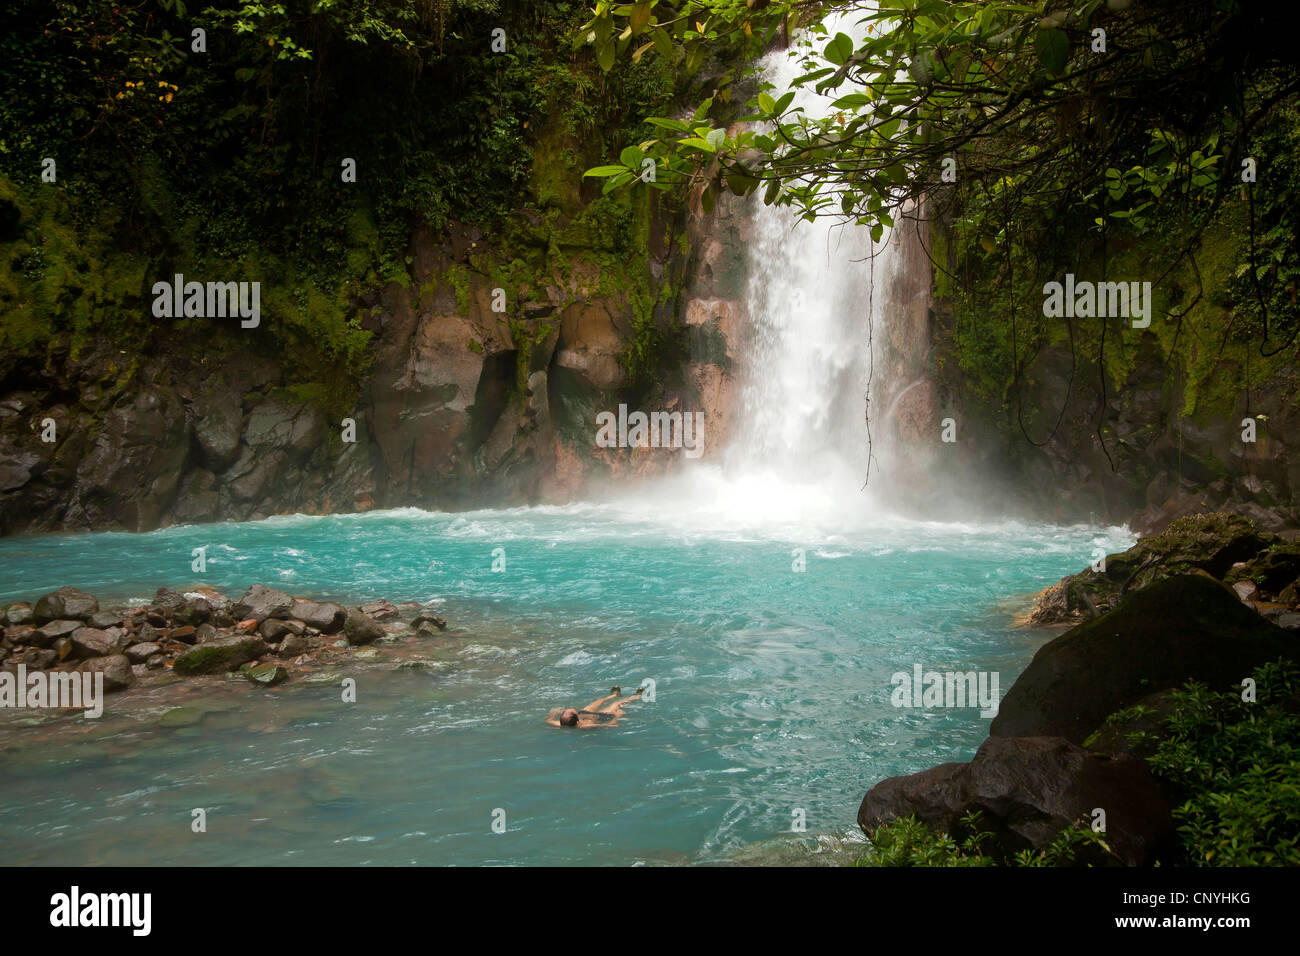 tourist swimming at the Waterfall with the blue waters of the Rio Celeste in VolcanTenorio National Park, Costa - Stock Image